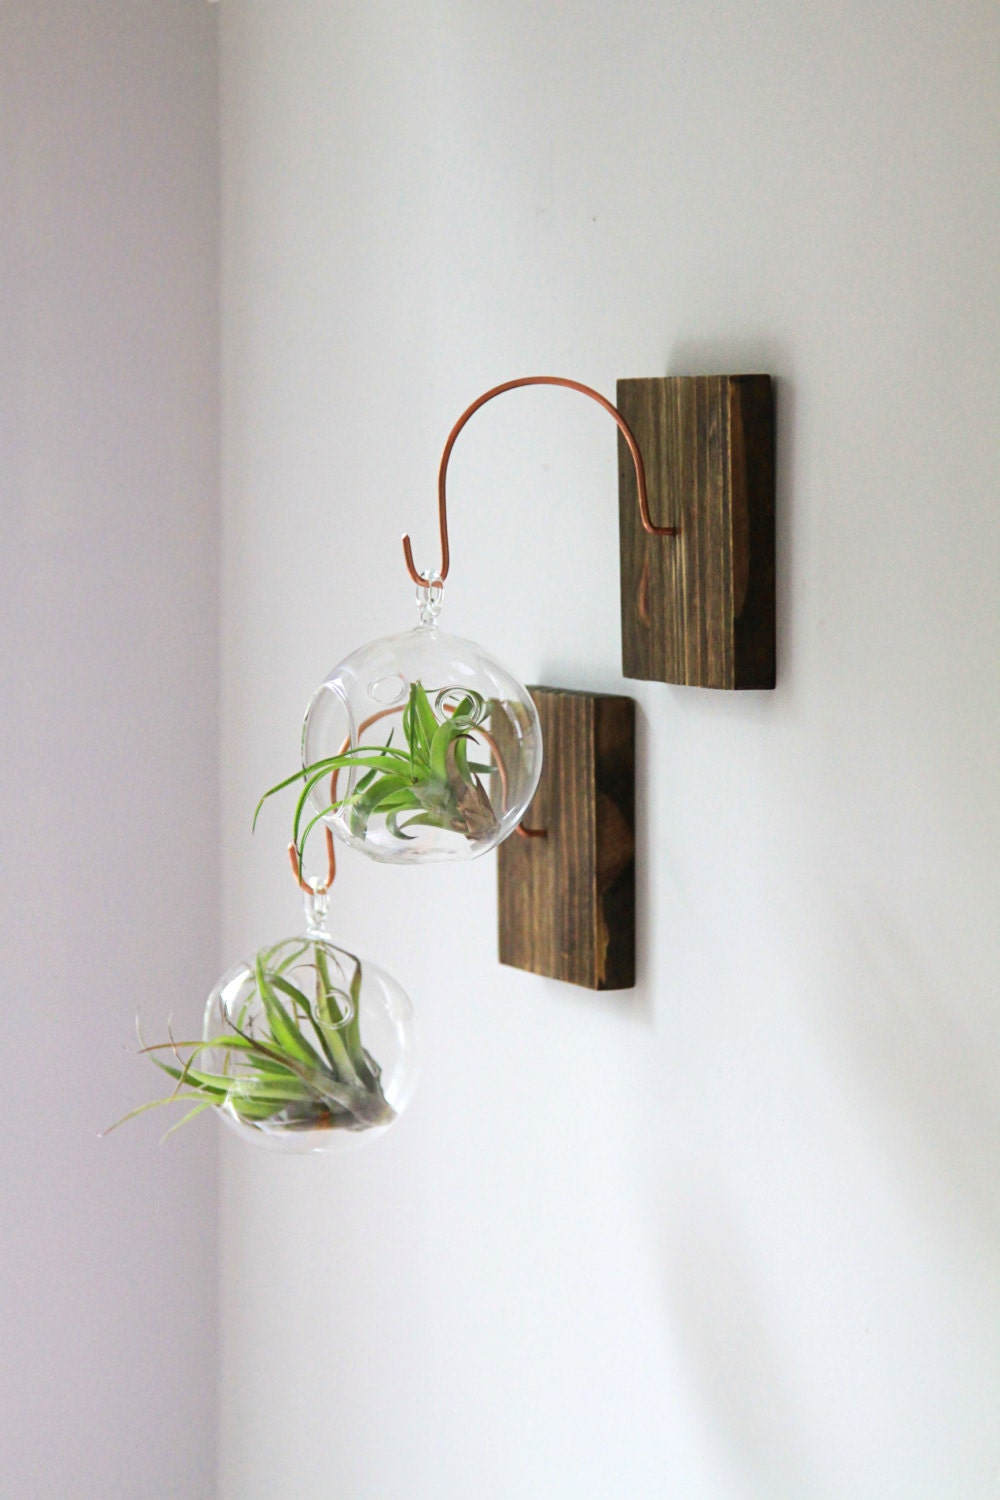 Wood and Copper Wall Mount Unique Wall Decor Handmade